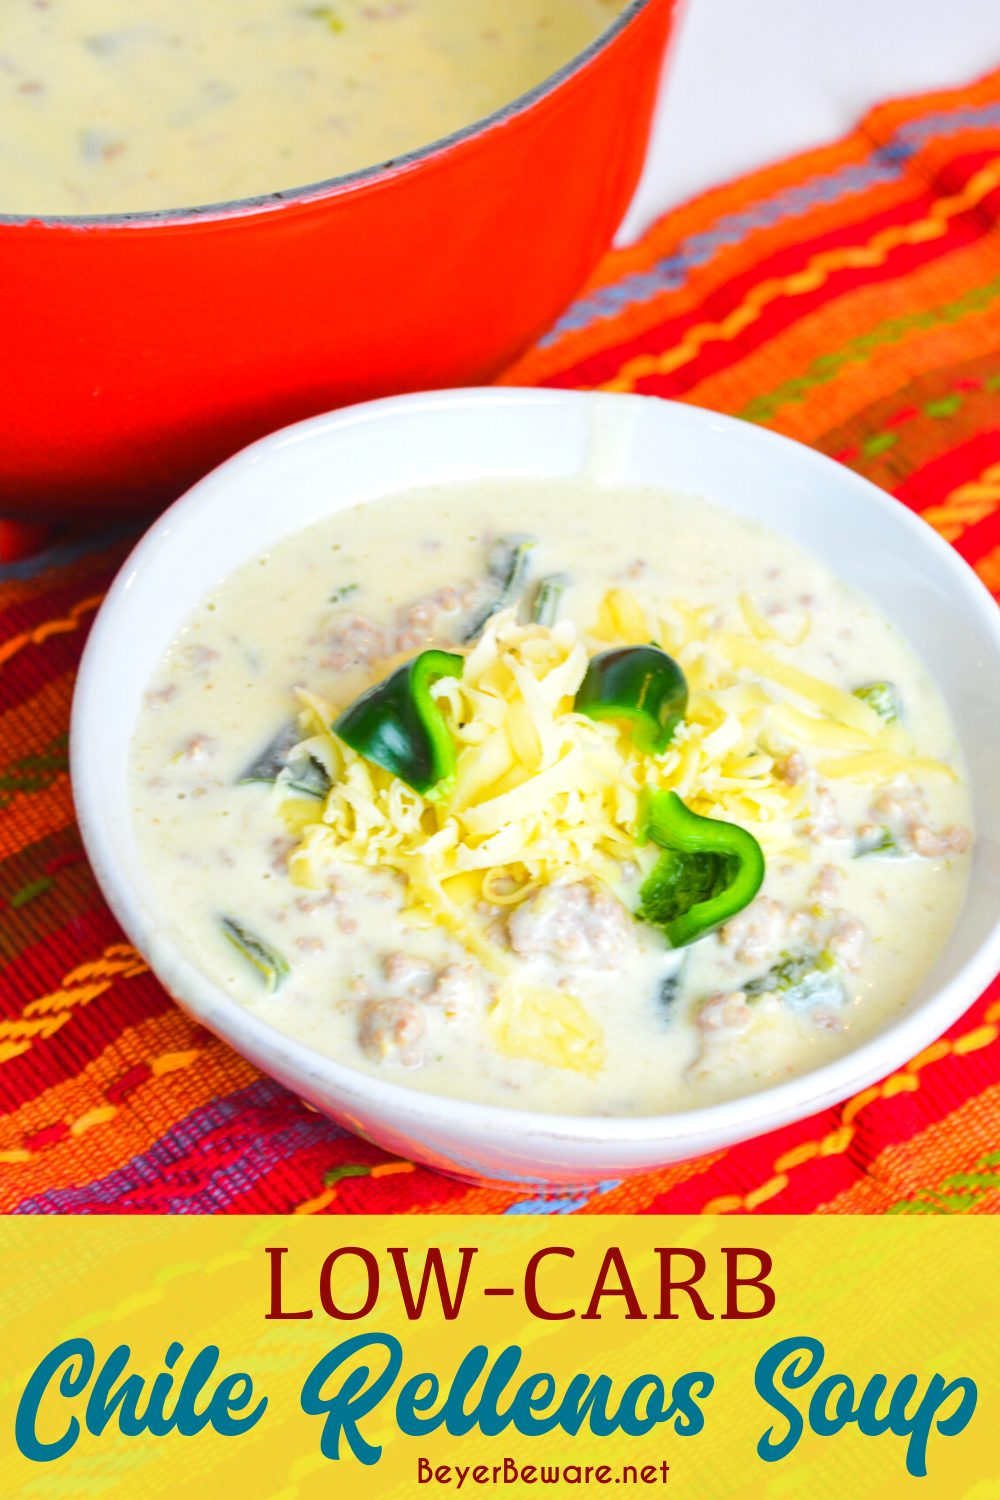 Low-carb chile Rellenos soup is a creamy keto Mexican soup recipe combining queso and cream cheese, ground pork, taco seasonings, and poblano peppers. This keto poblano pepper and sausage soup is full of flavors just like your favorite chile Rellenos at your favorite Mexican restaurant. #Soup #Keto #LowCarb #MexicanFood #Recipes #GlutenFree